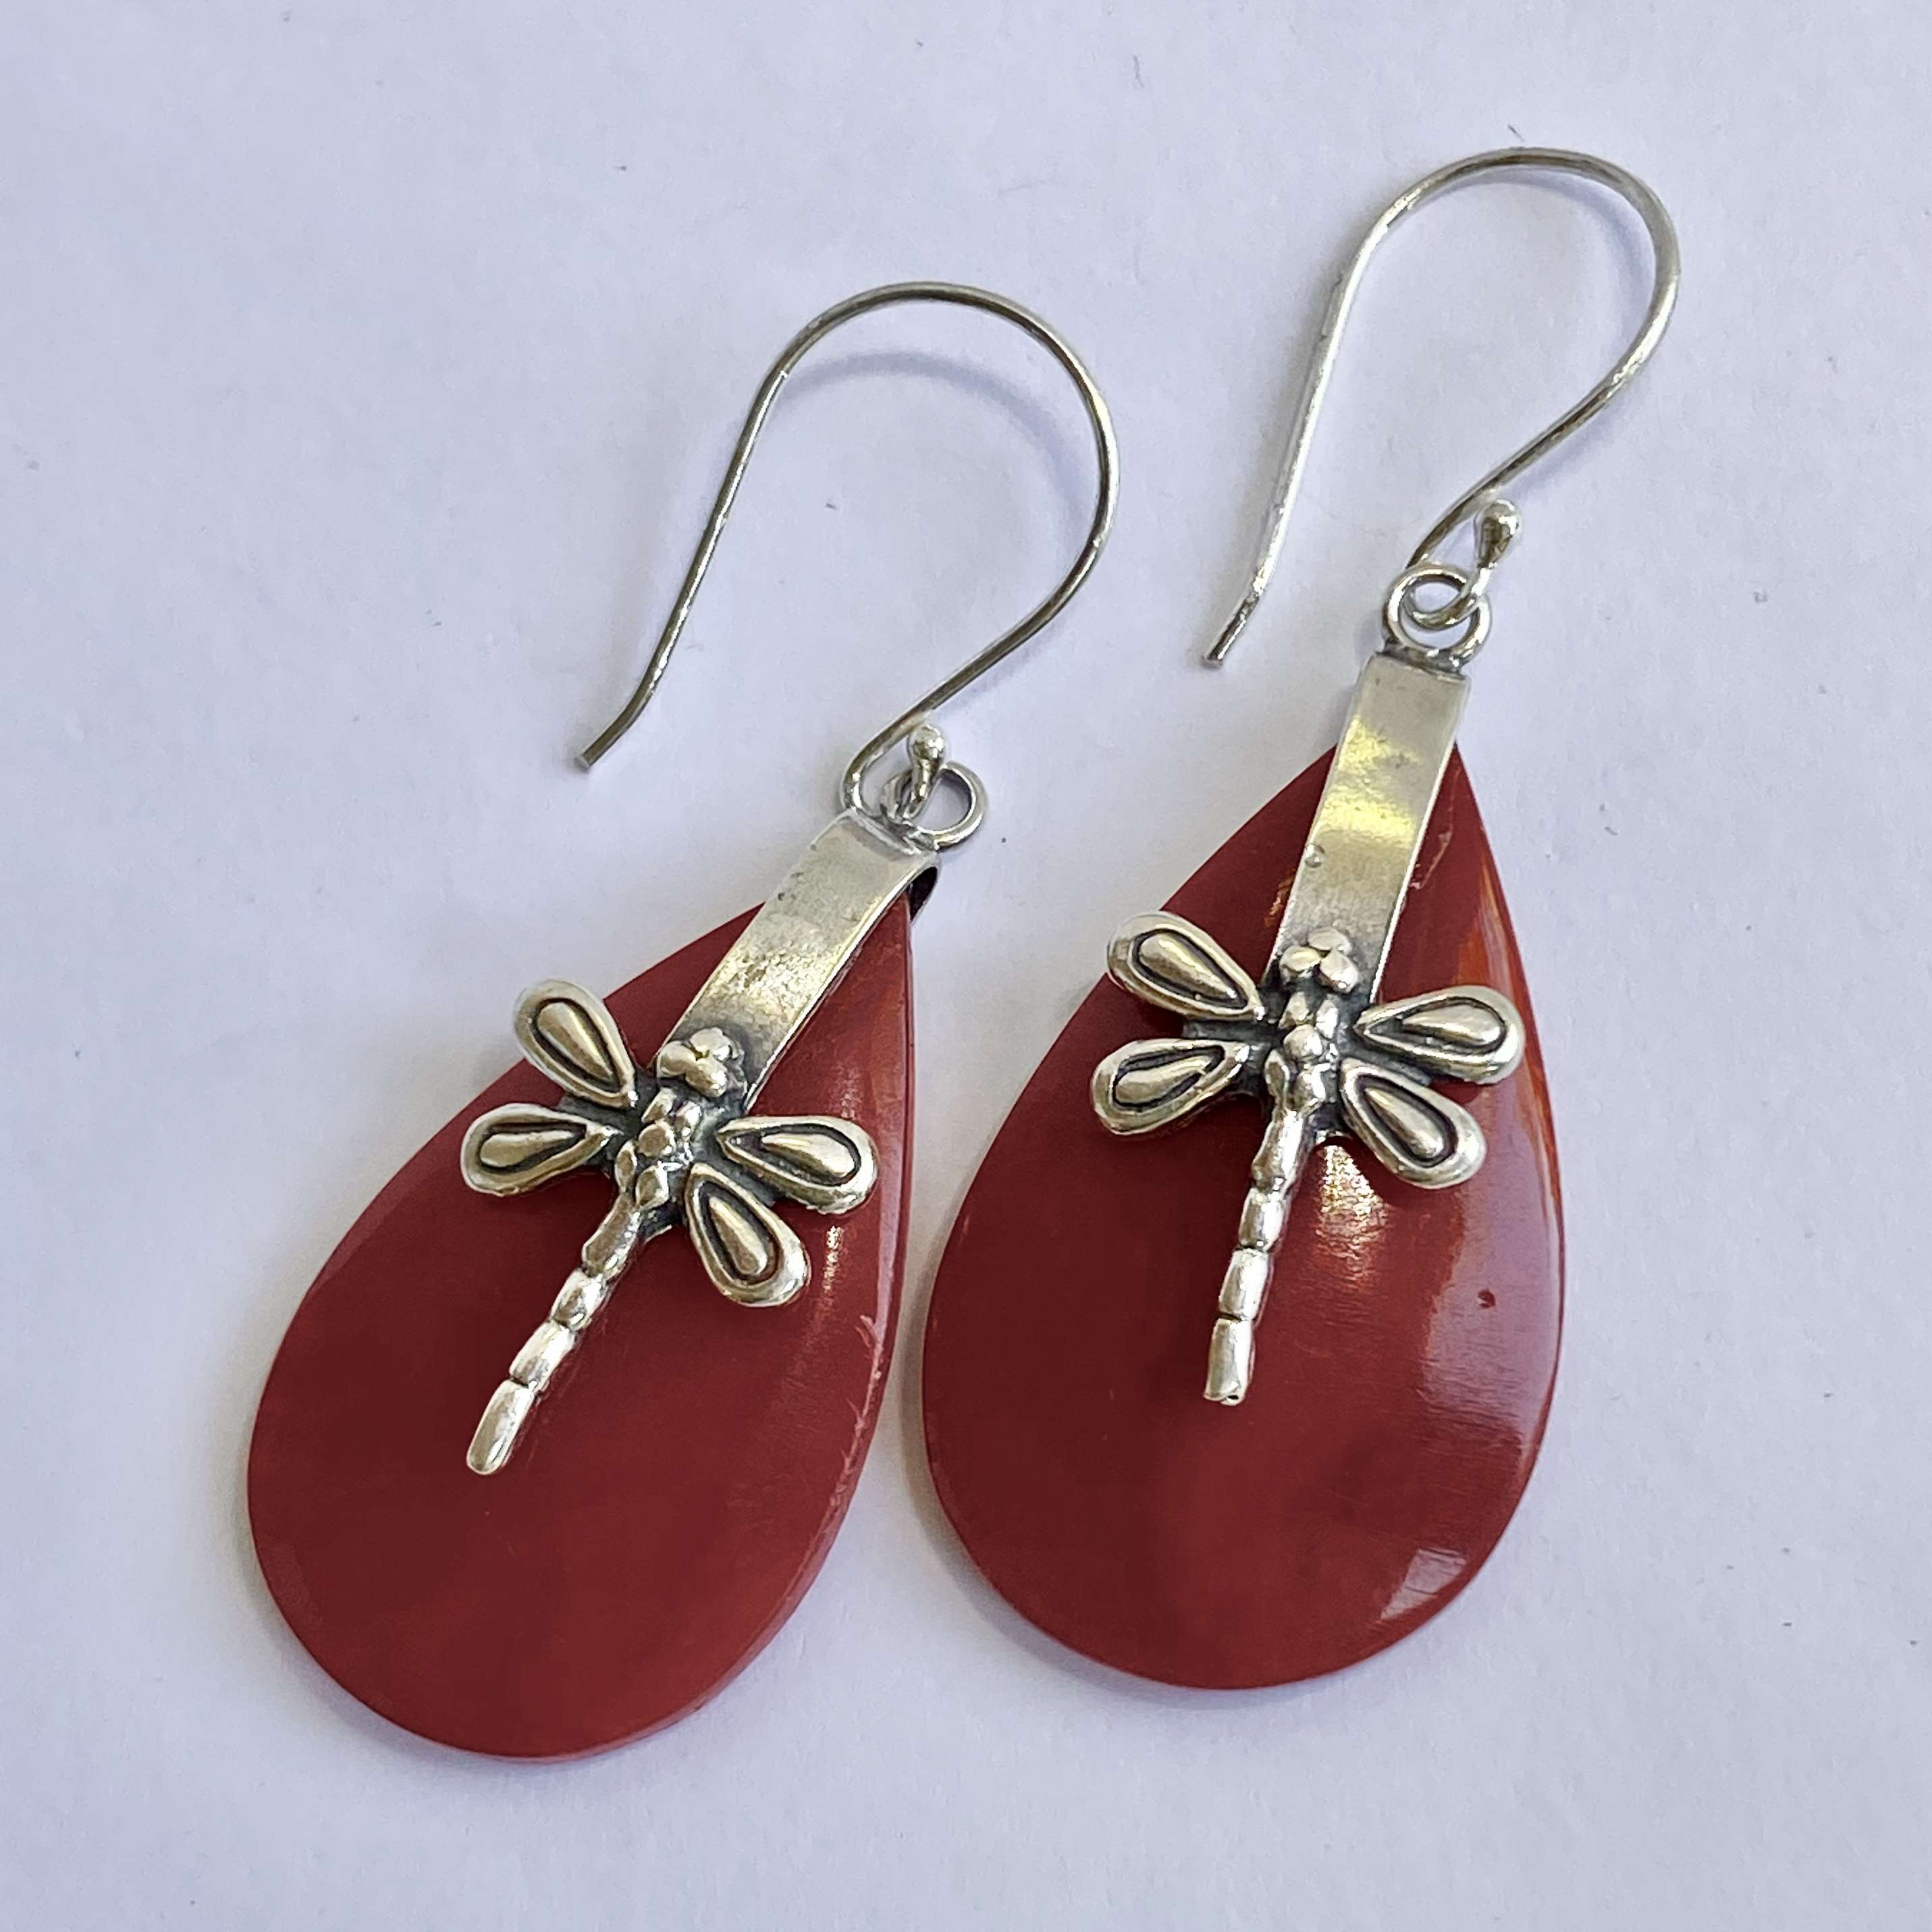 (HANDMADE 925 BALI SILVER DRAGONFLY EARRINGS WITH CORAL)